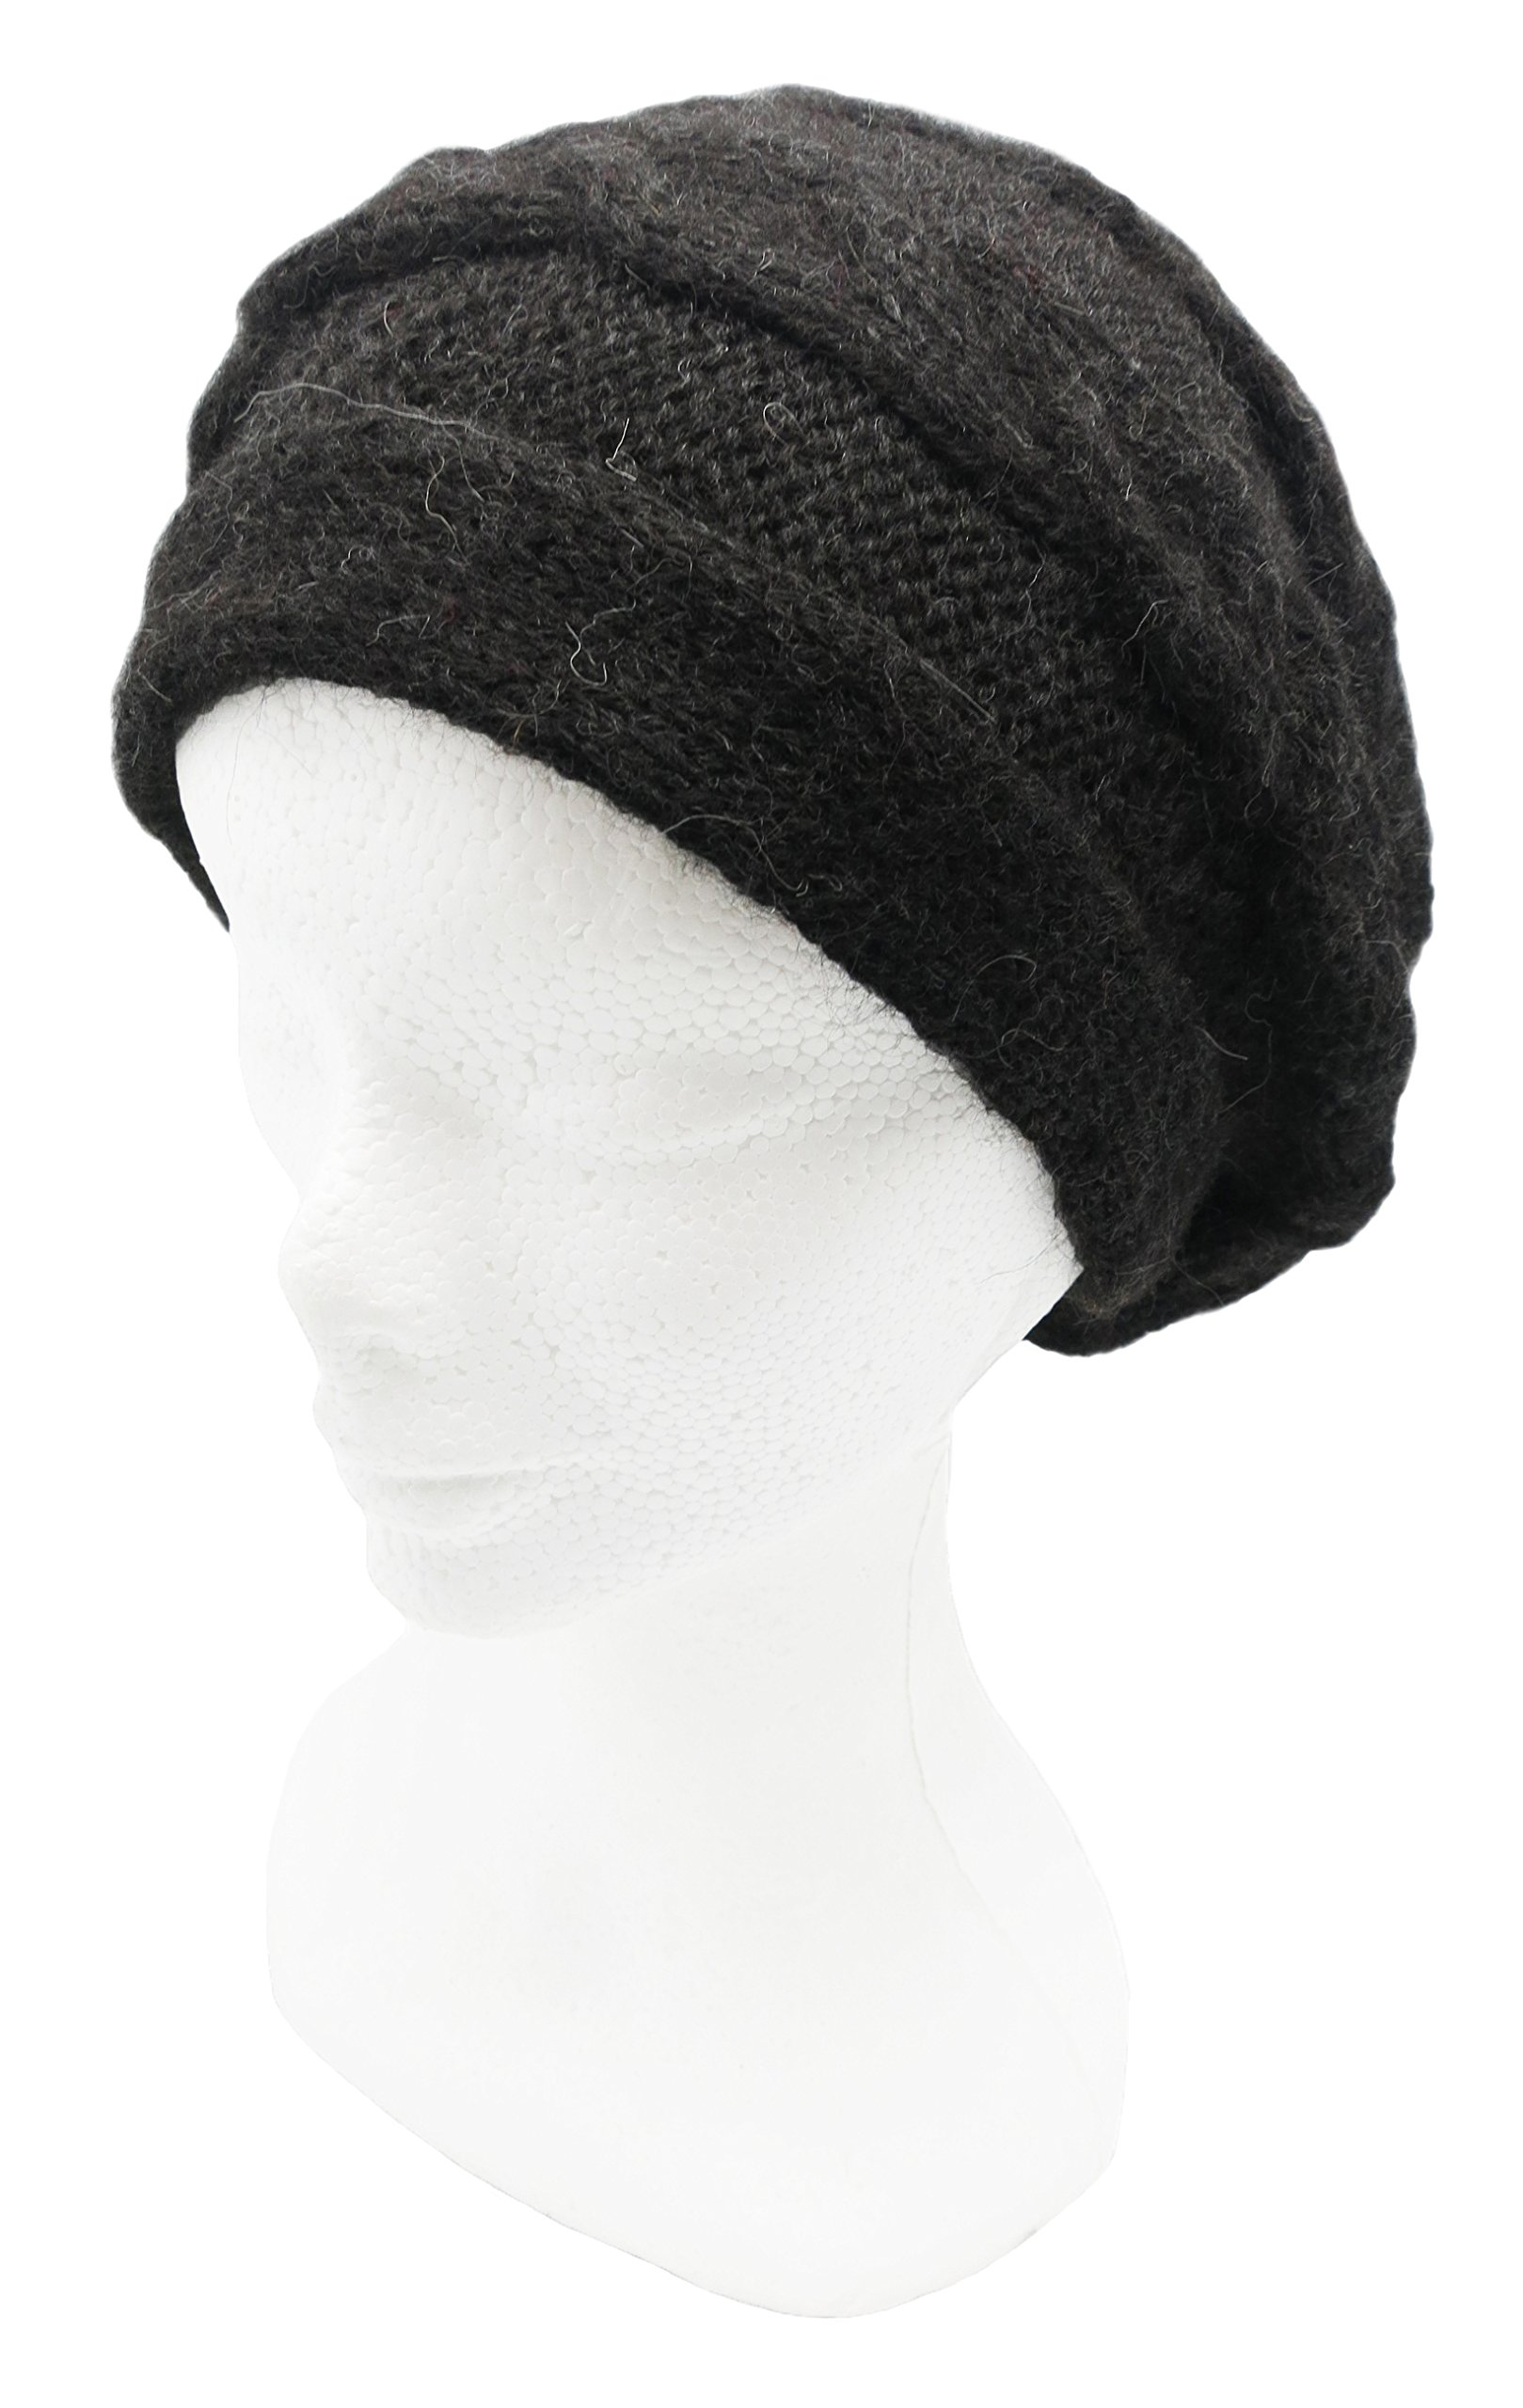 READY TO SHIP Knitted Signature PURE ALPACA Slouchy Beret for Snow (Dark Charcoal)